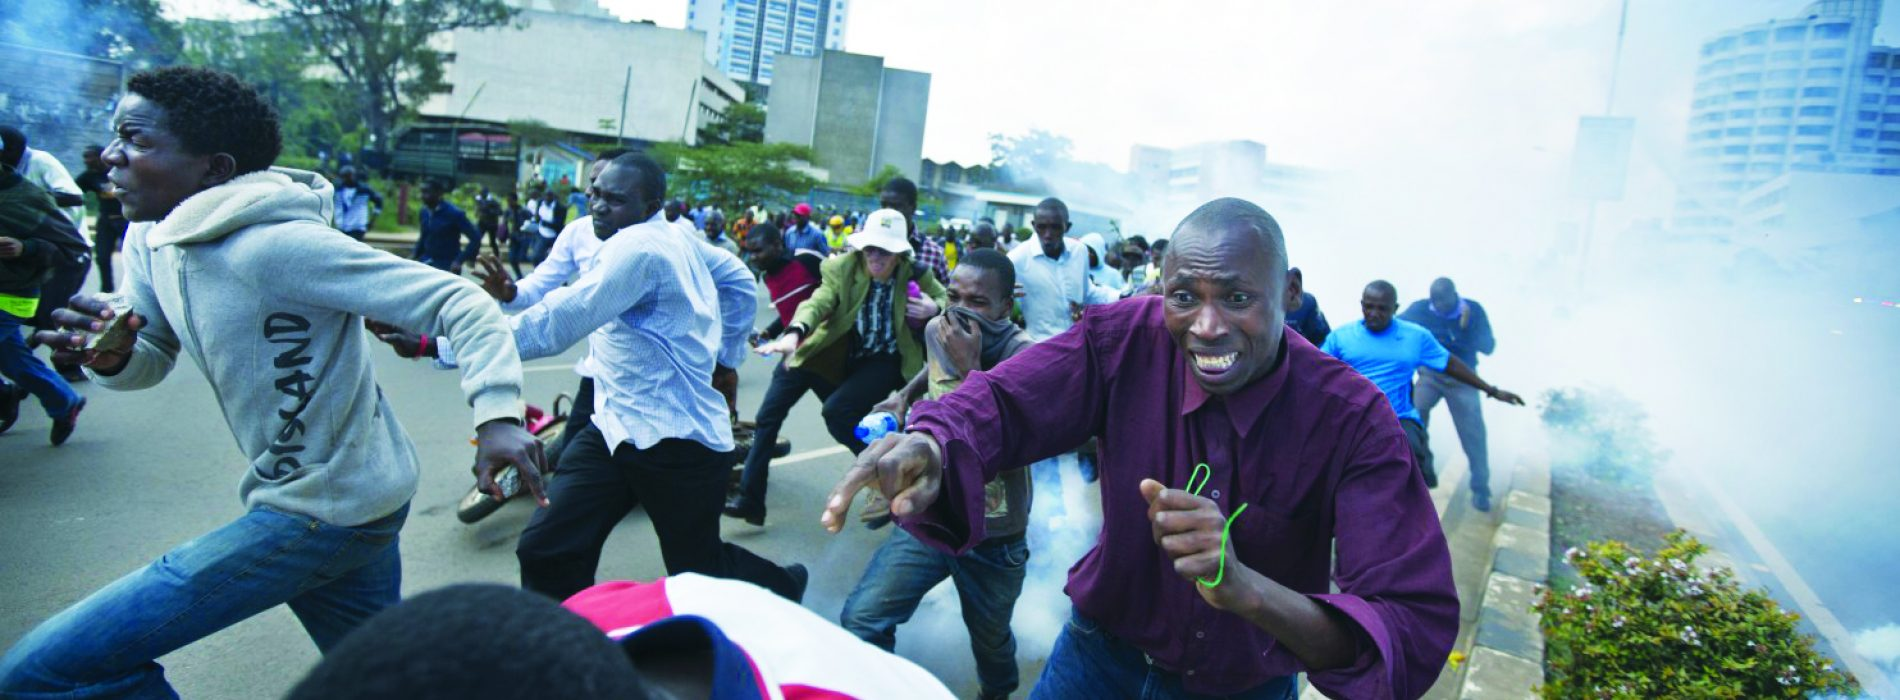 Kenya: Pre-election violence turns fatal